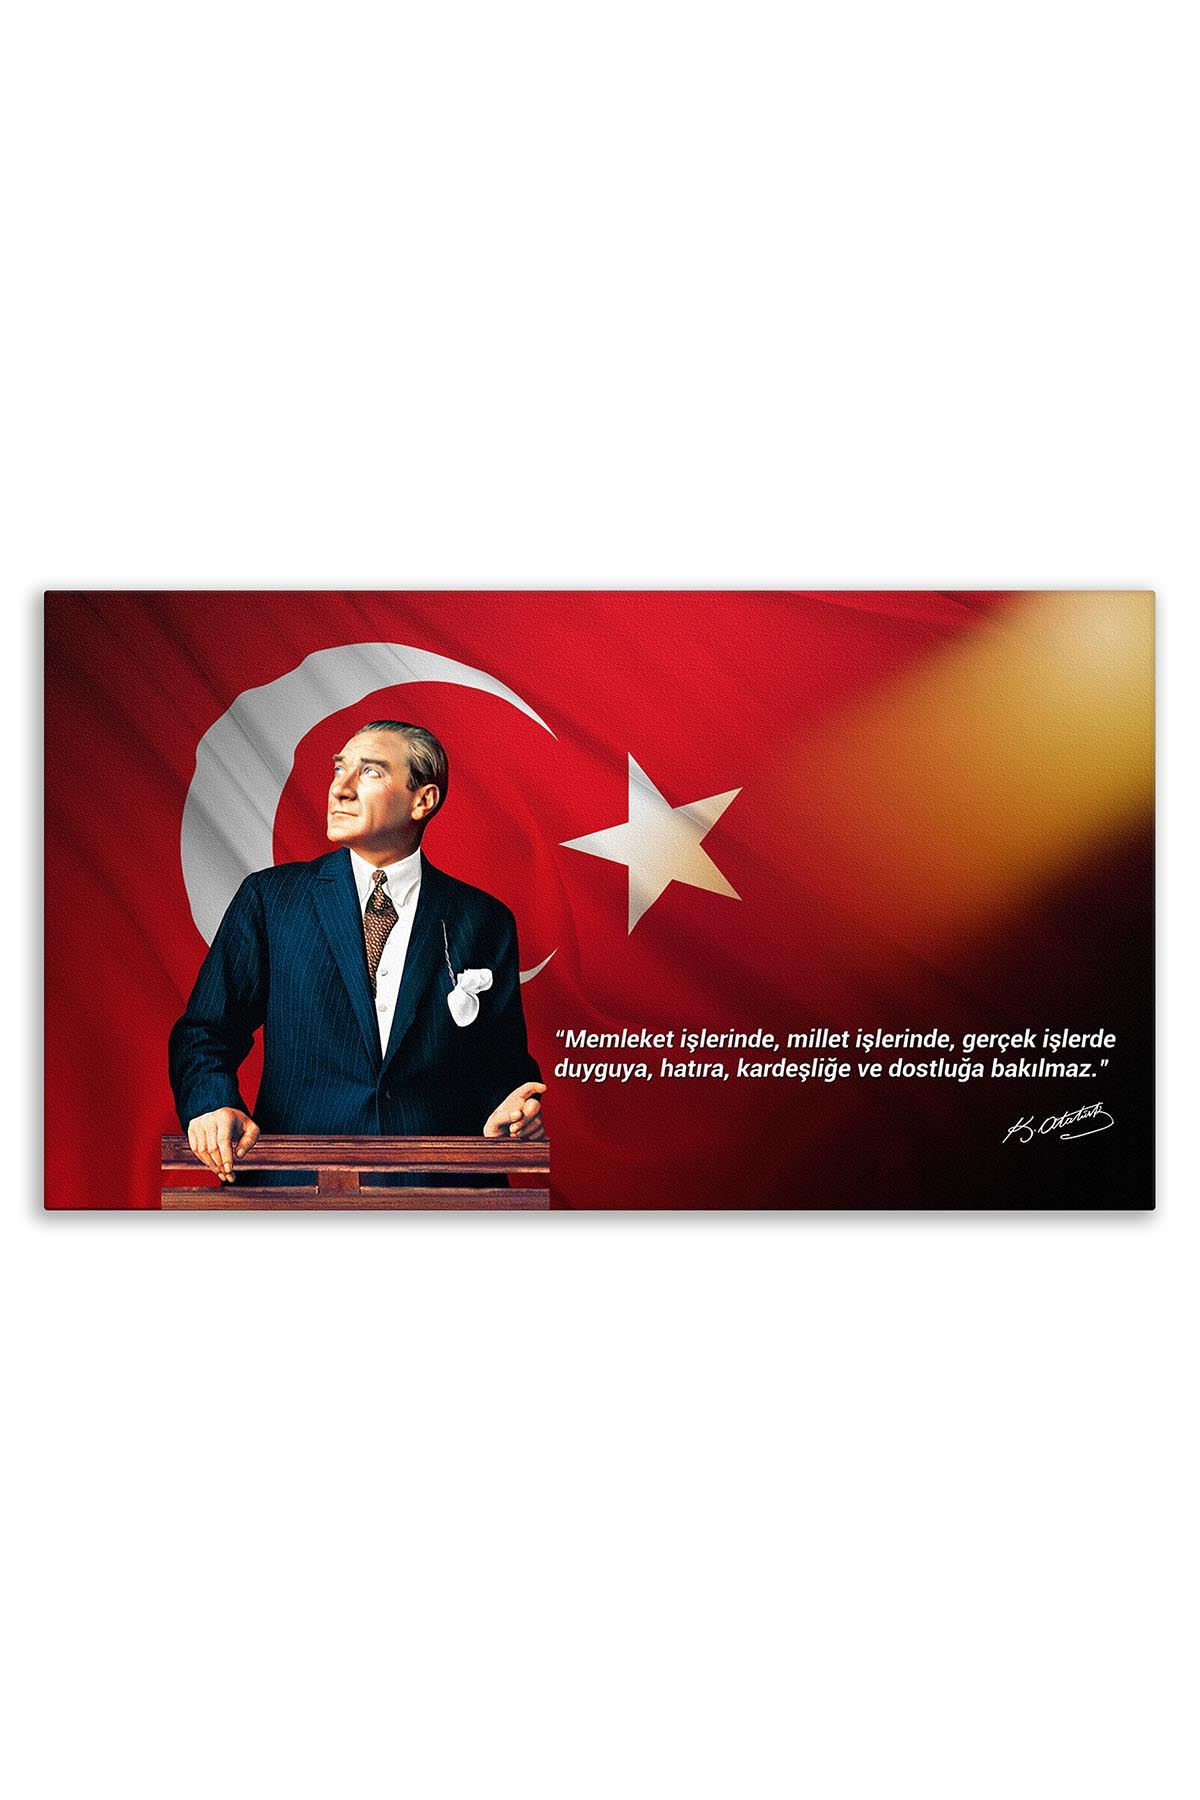 Ataturk Canvas Board | Printed Canvas Board | Customized Board